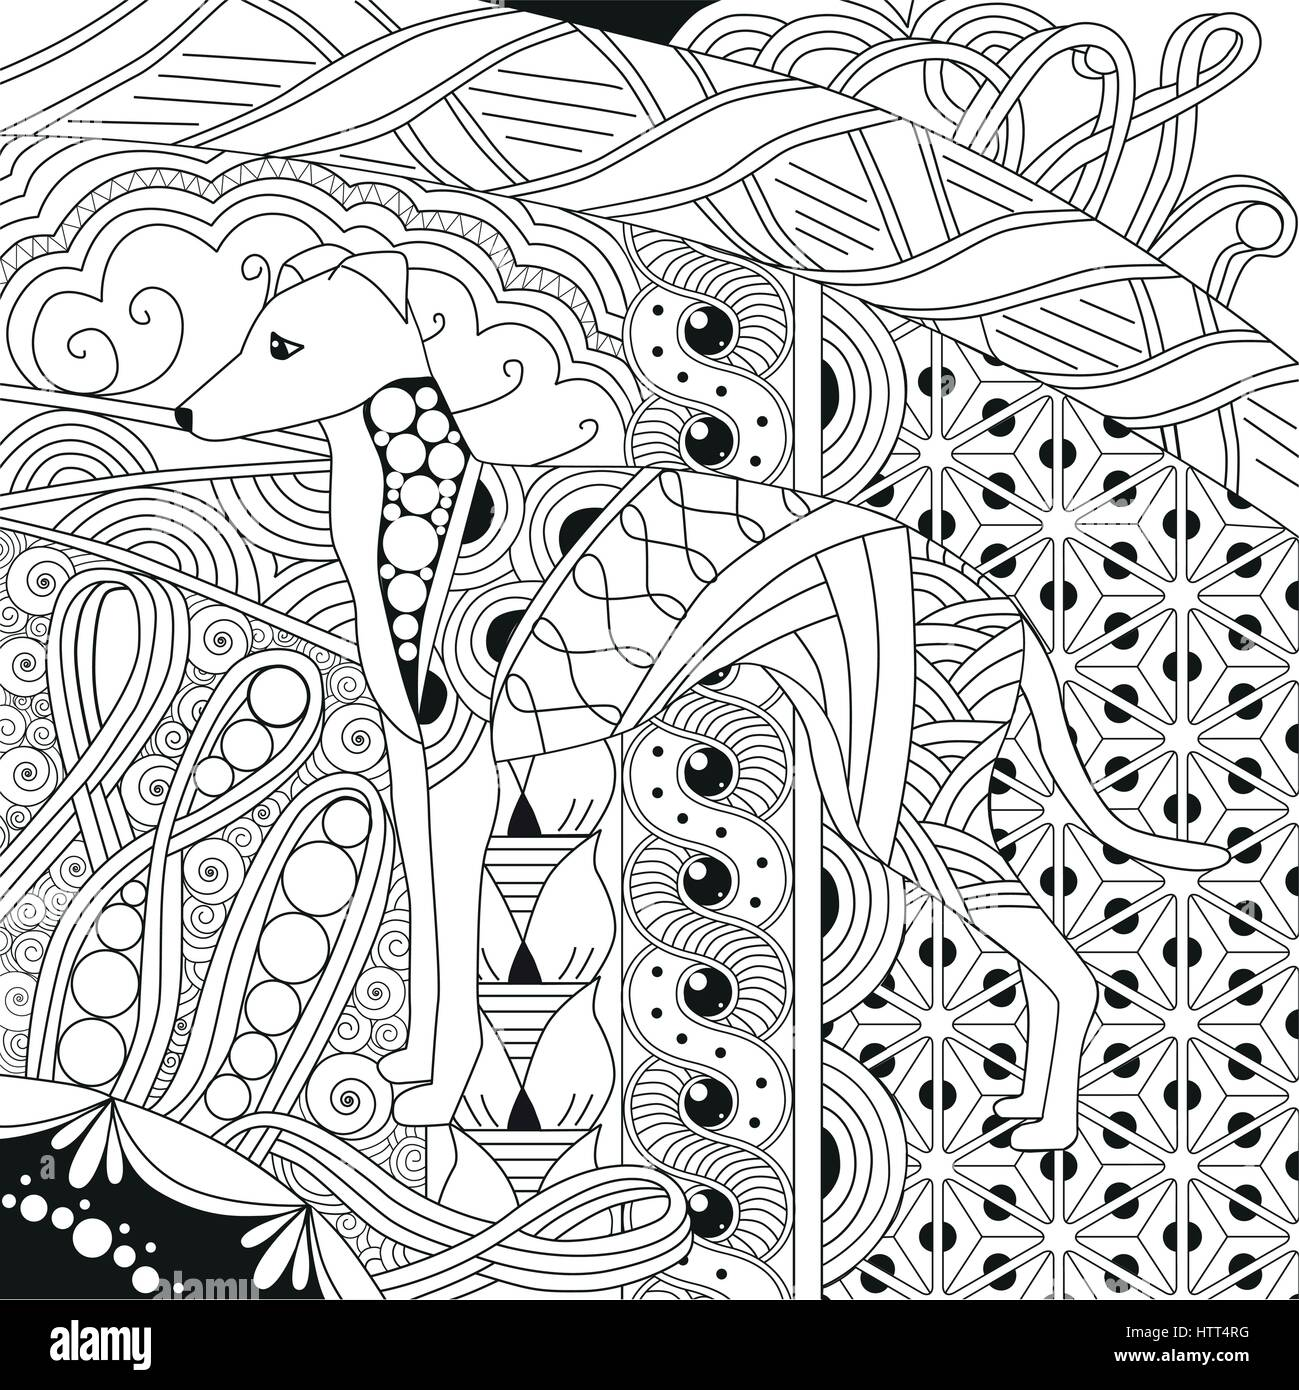 dog zentangle styled with clean lines for coloring book for anti ...